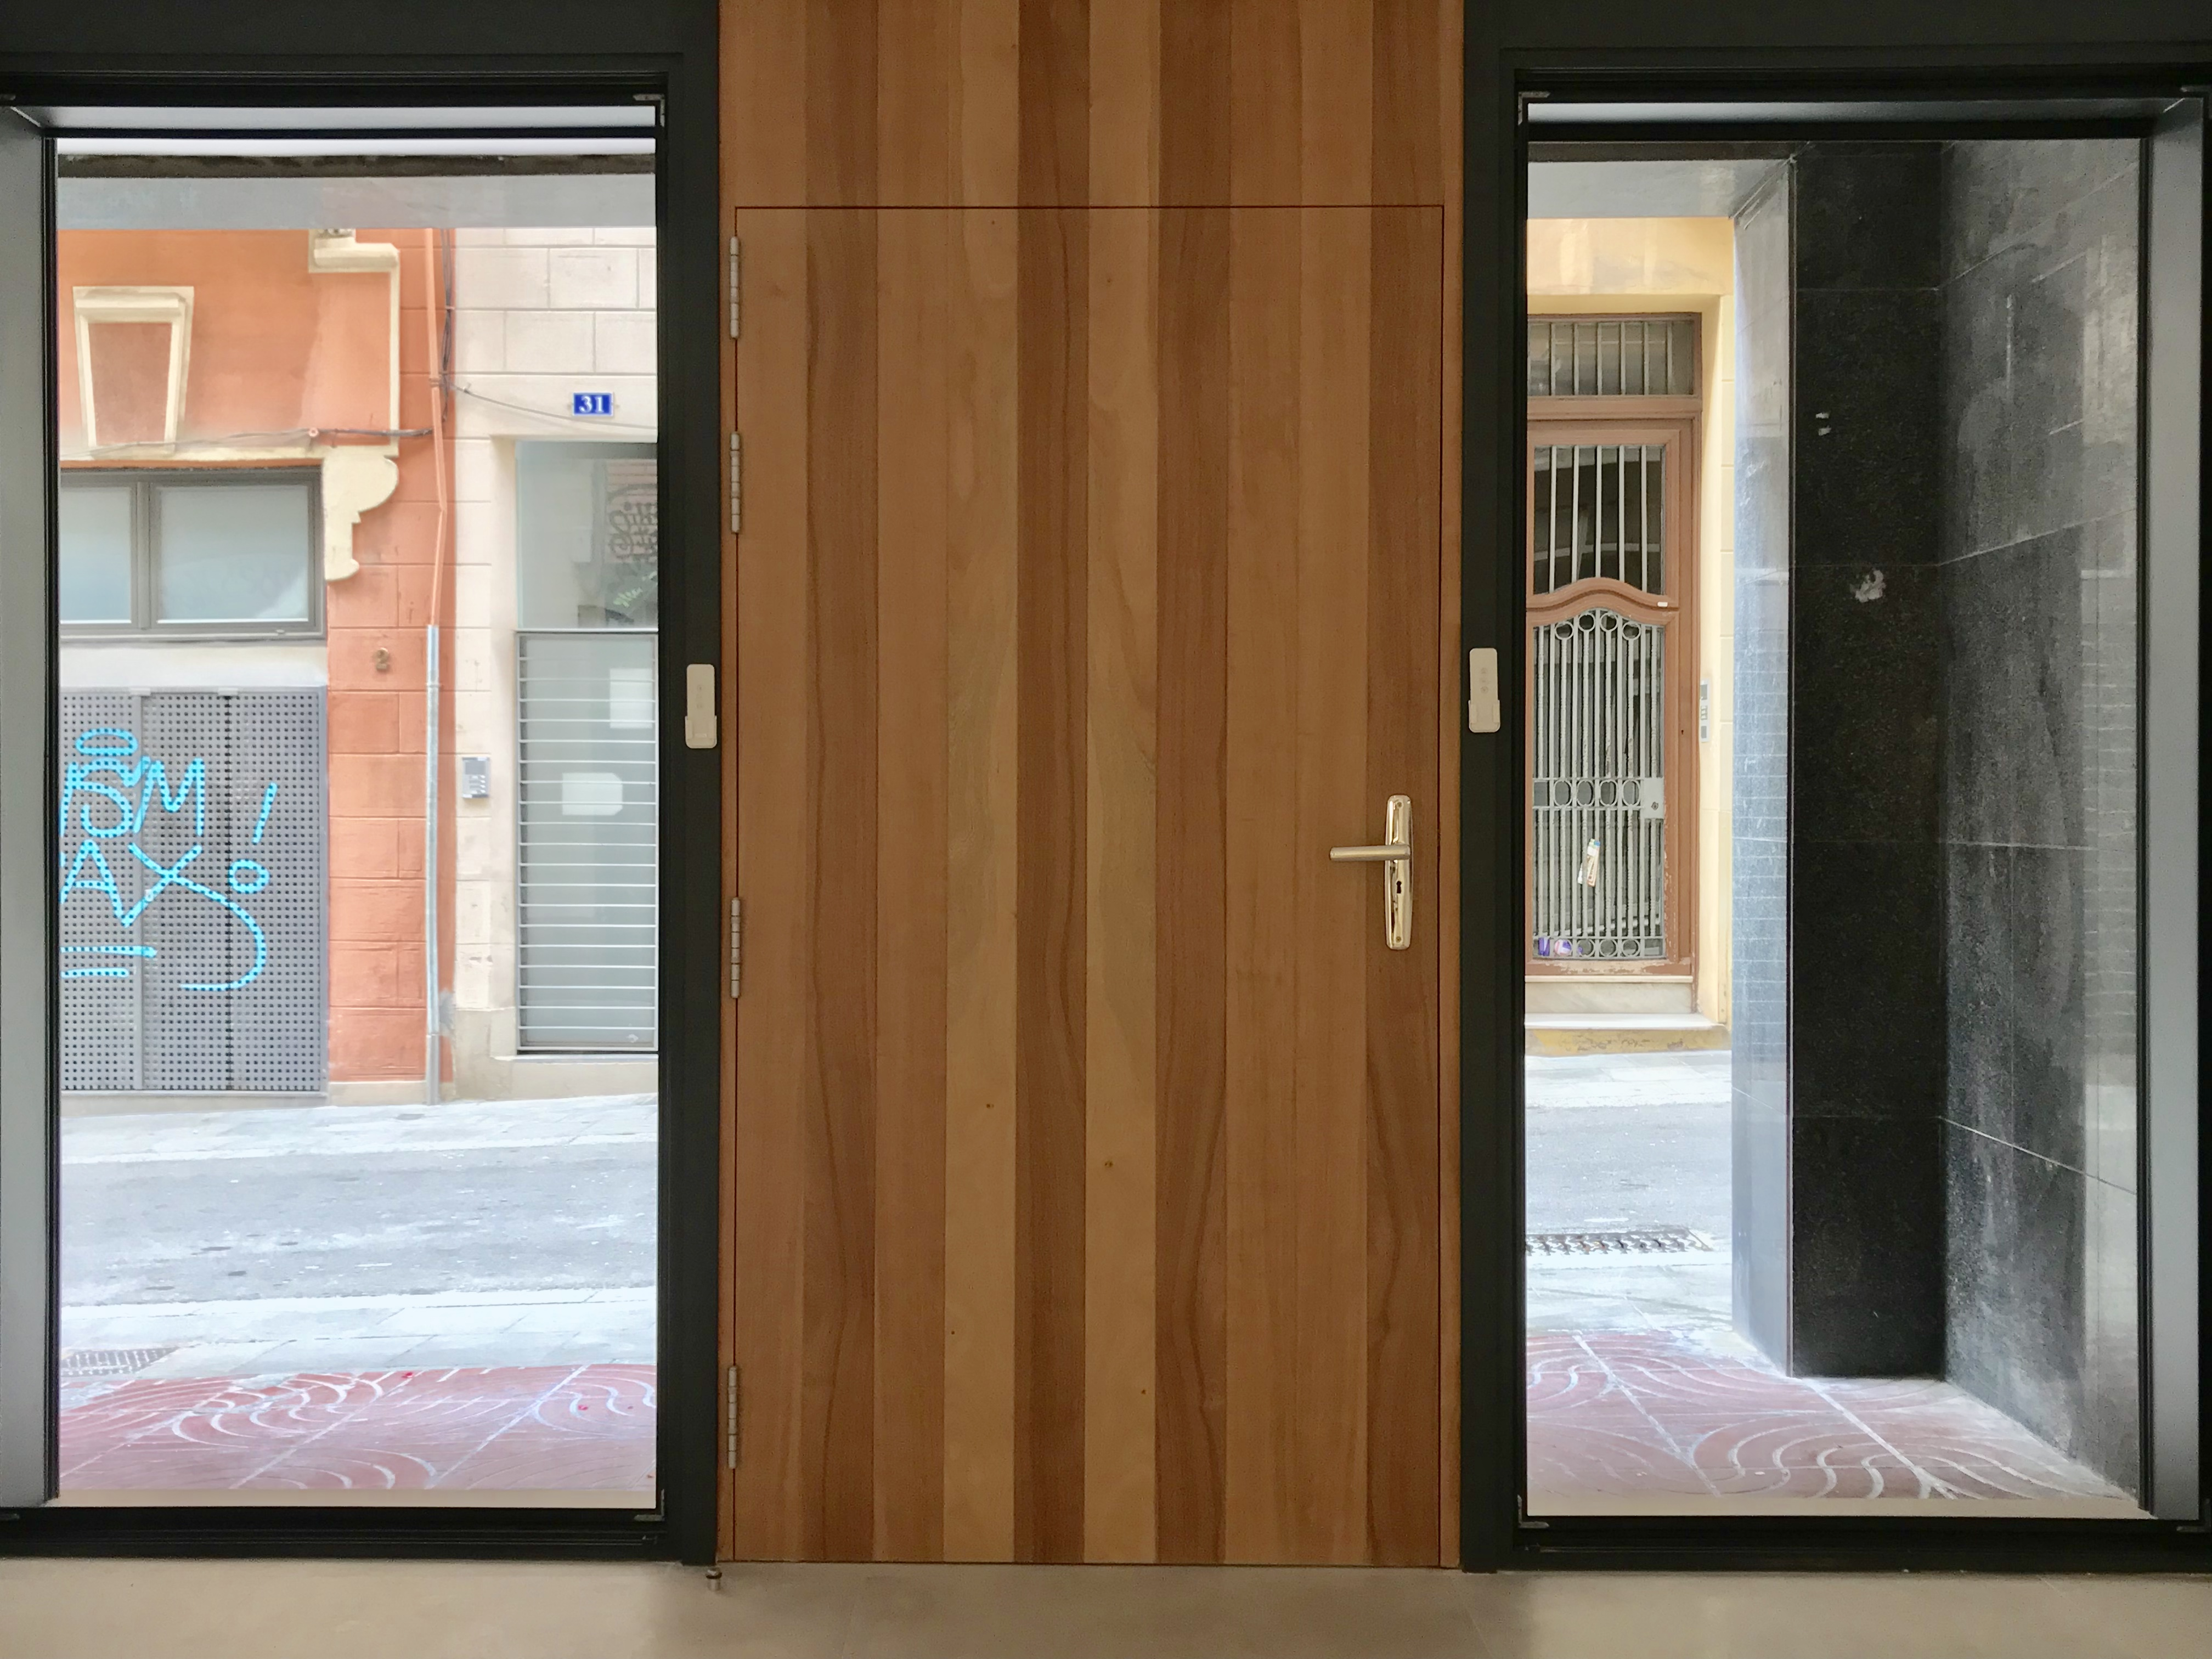 rardo-architects-in-sitges-and-barcelona-x